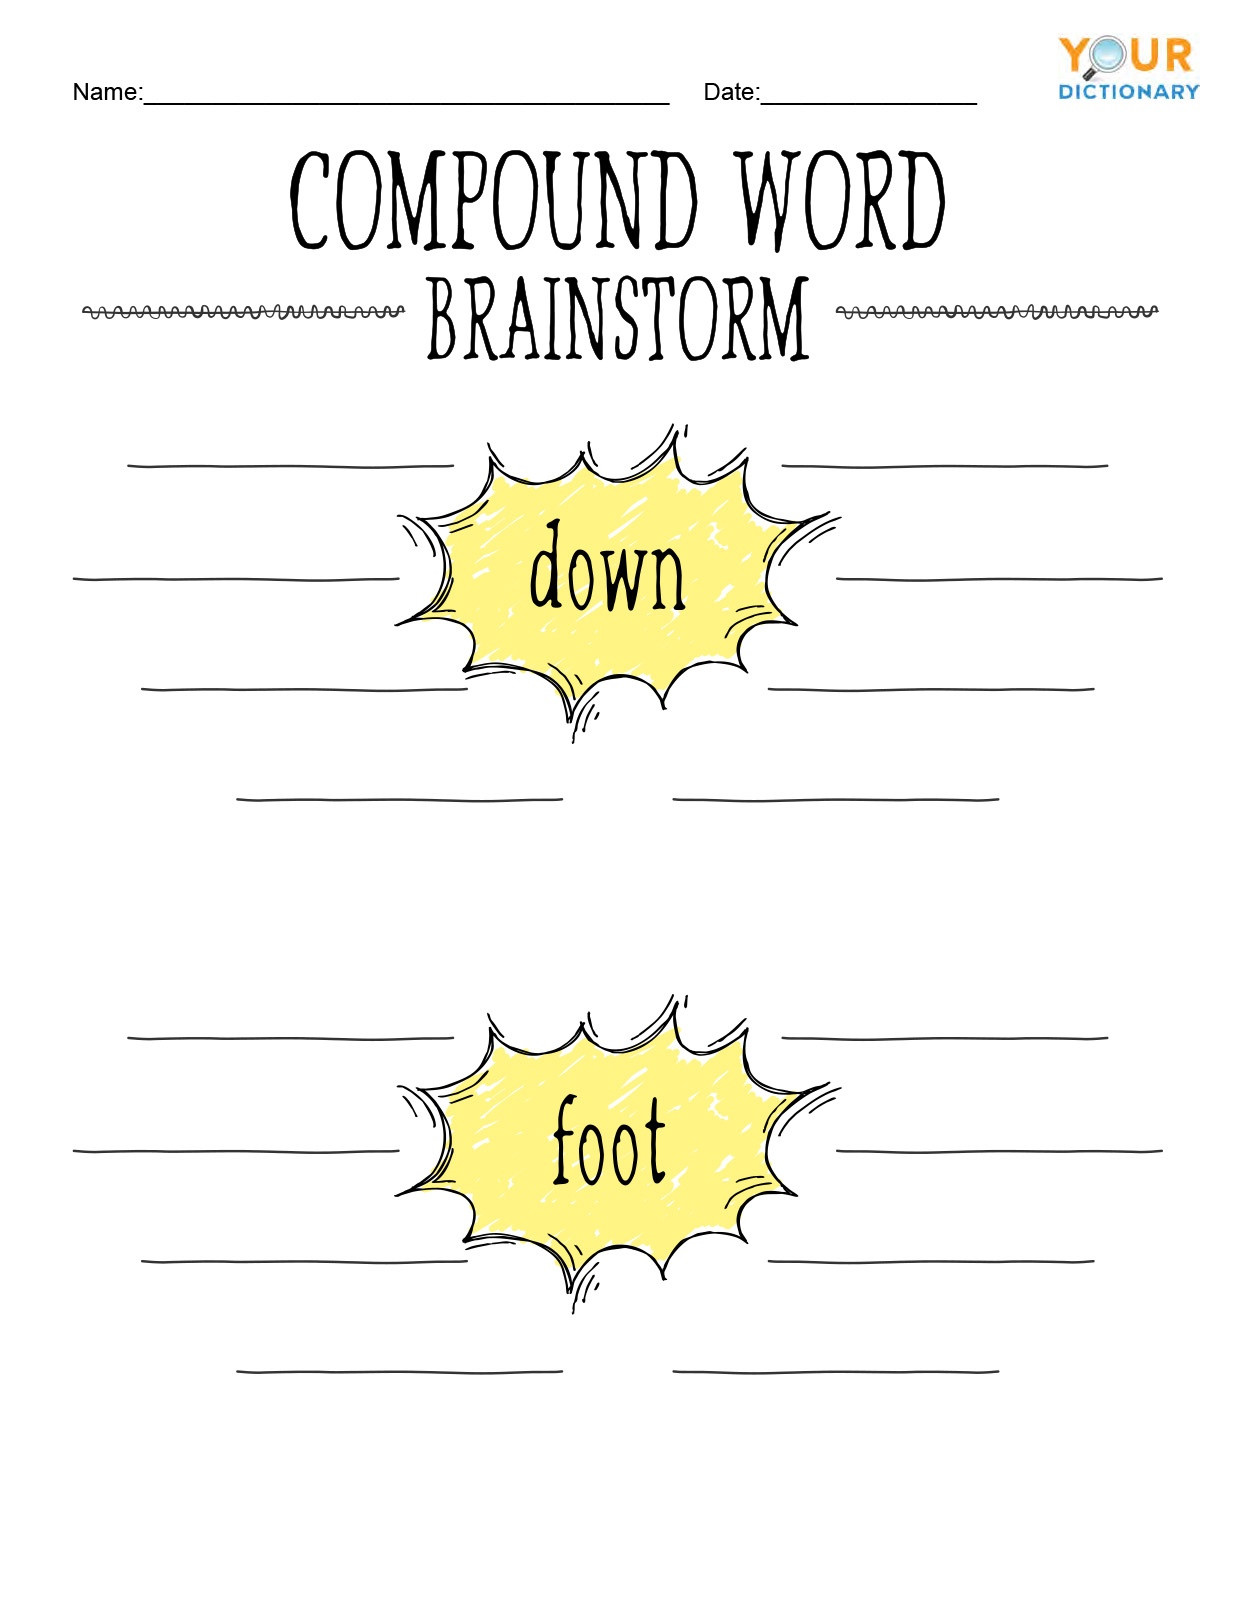 Compound Words Worksheets 1st Grade Fun Exercises for Pound Words